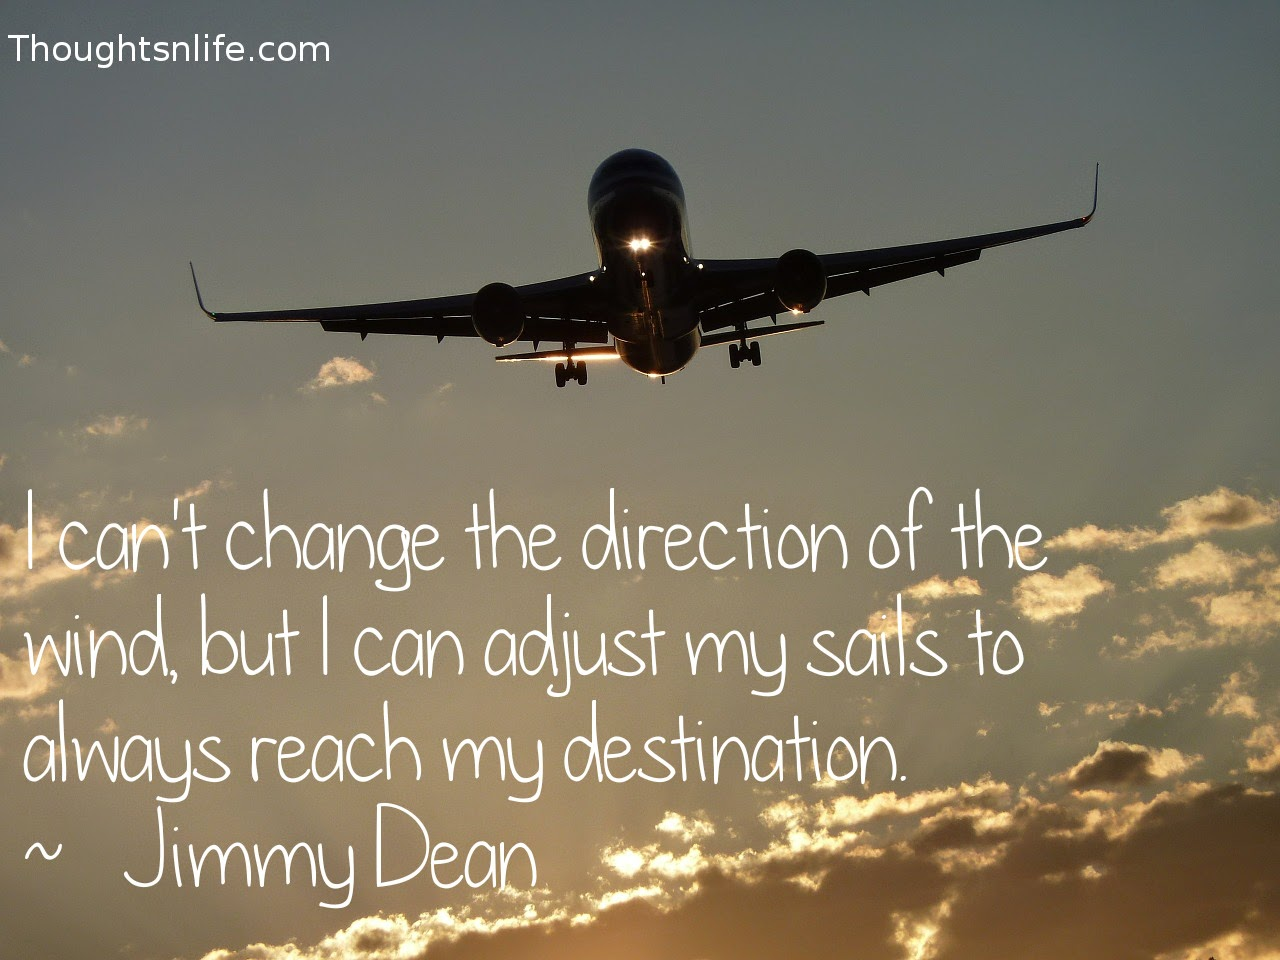 Thoughtsnlife.com: I can't change the direction of the wind,  but I can adjust my sails to always reach my destination.  ~   Jimmy Dean